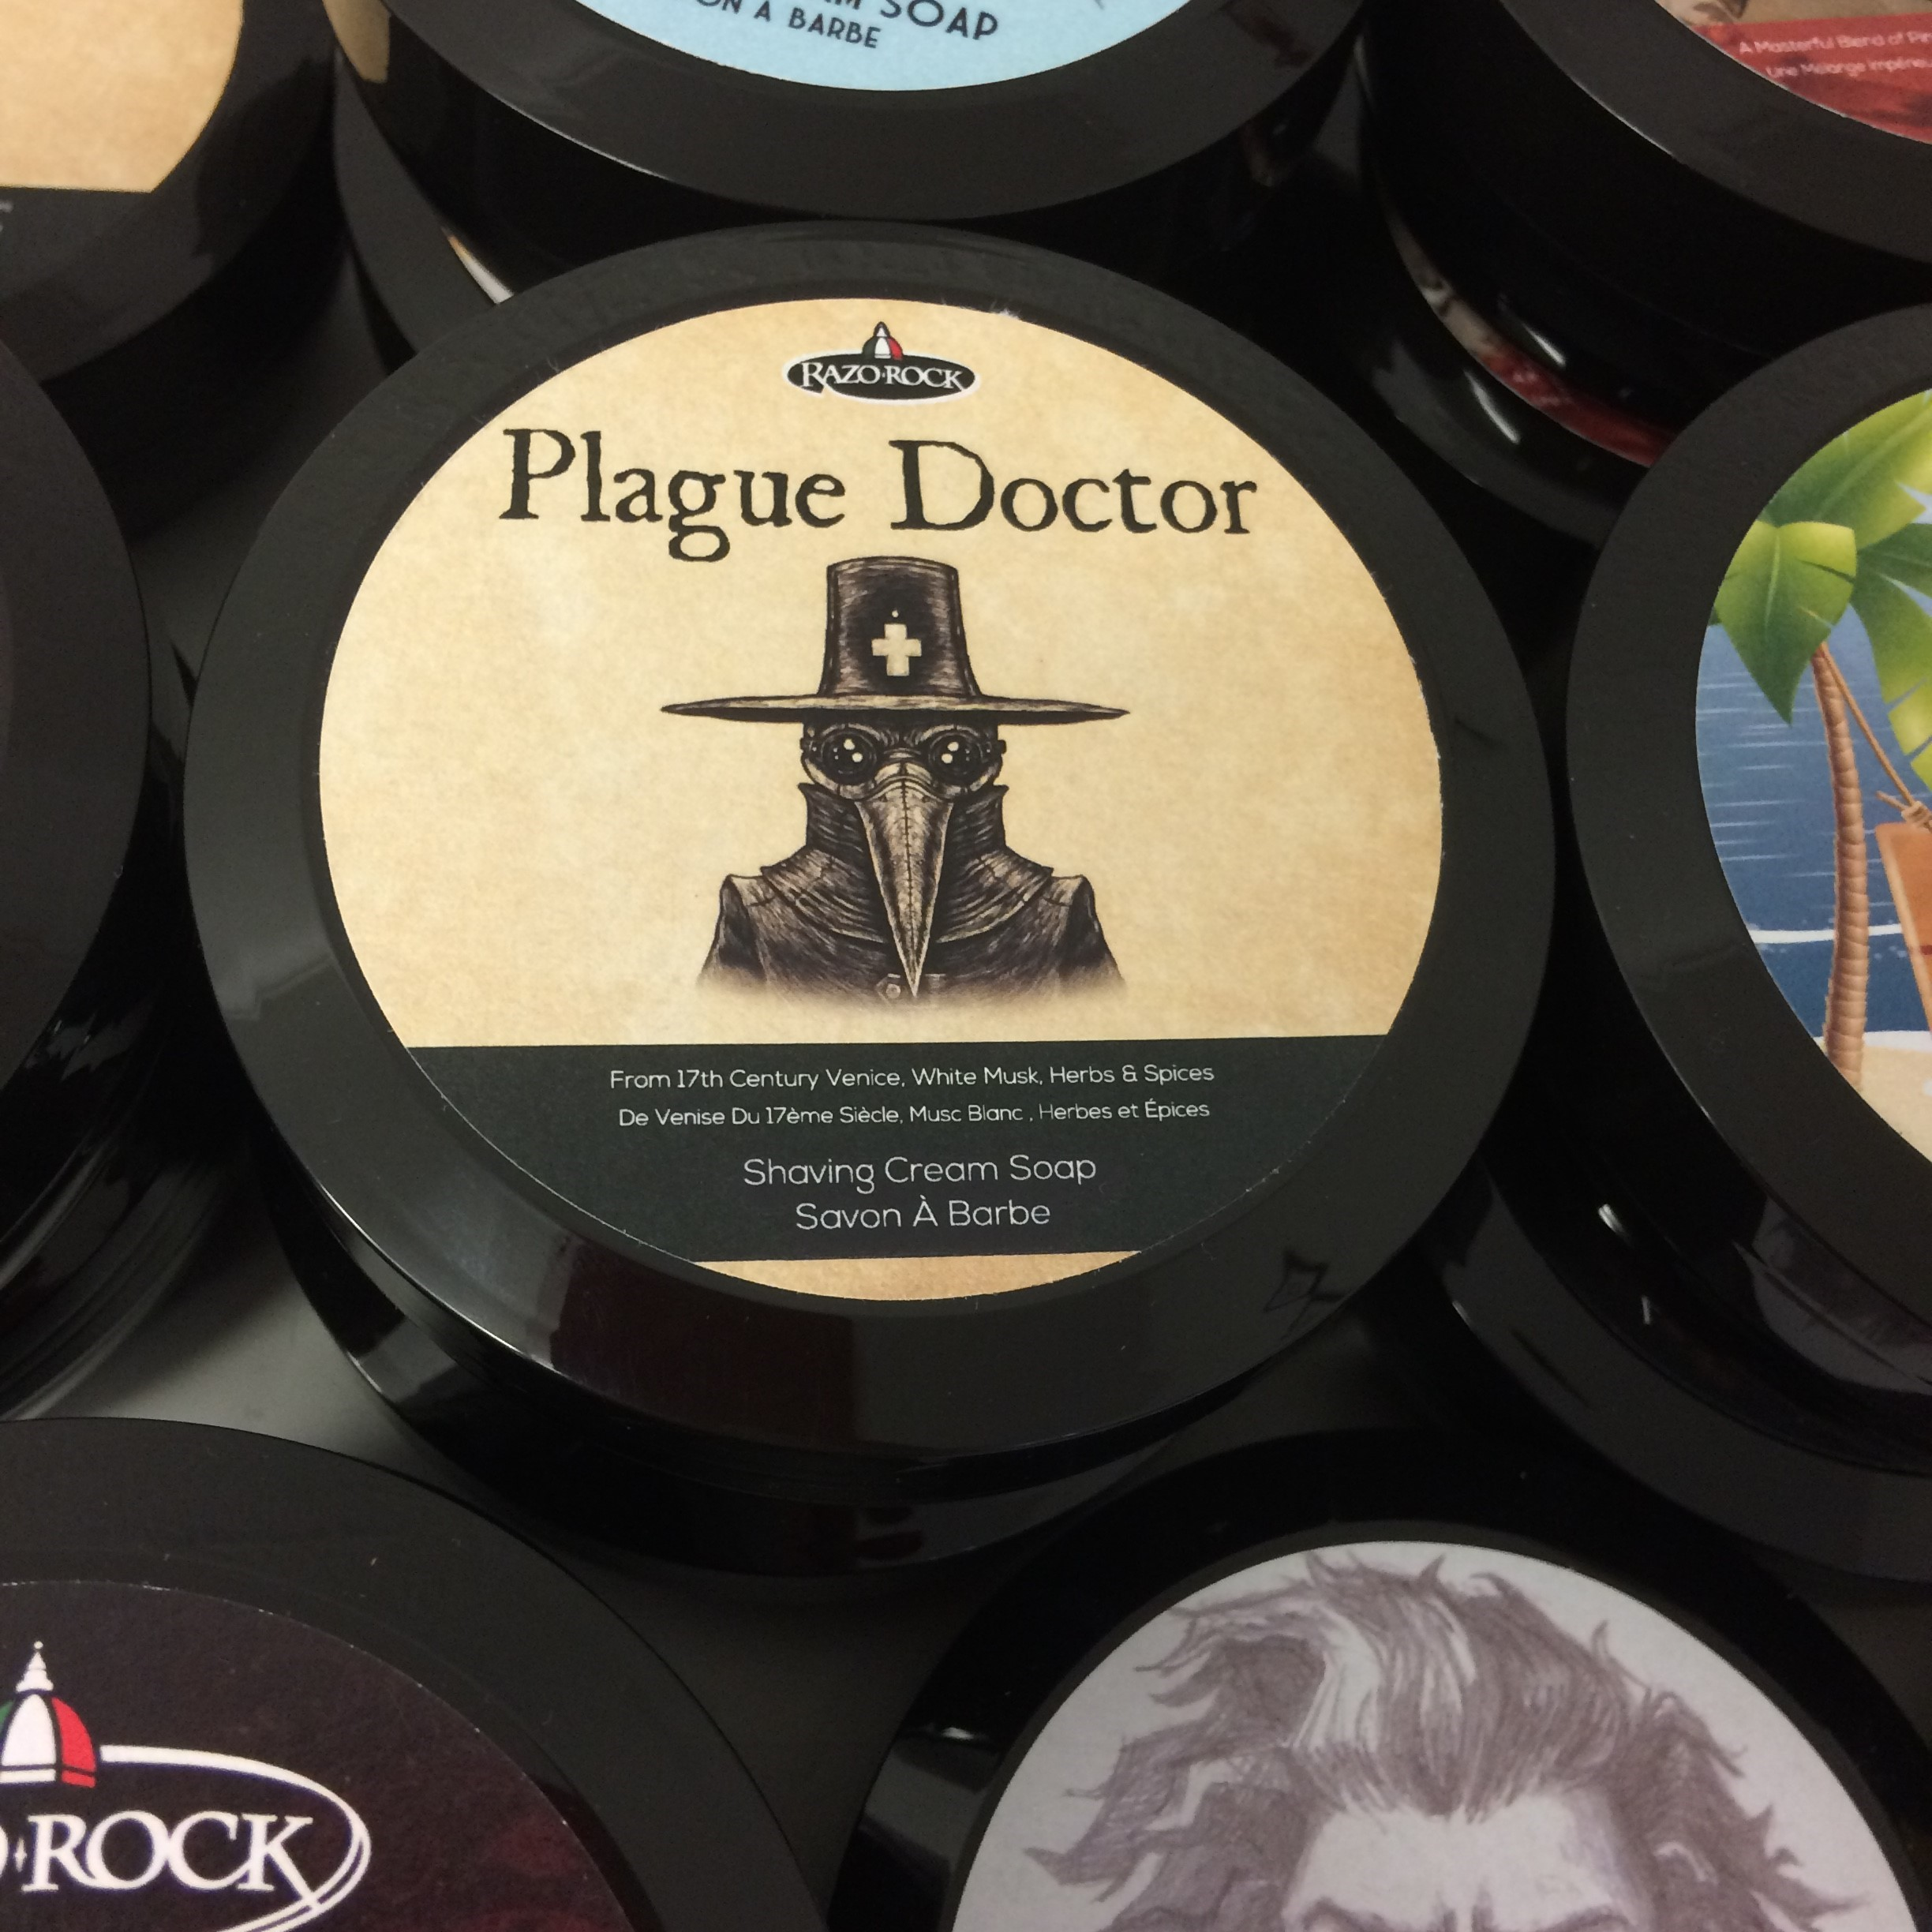 RazoRock Plague Doctor Shaving Cream Soap | Agent Shave | Wet Shaving Supplies Uk